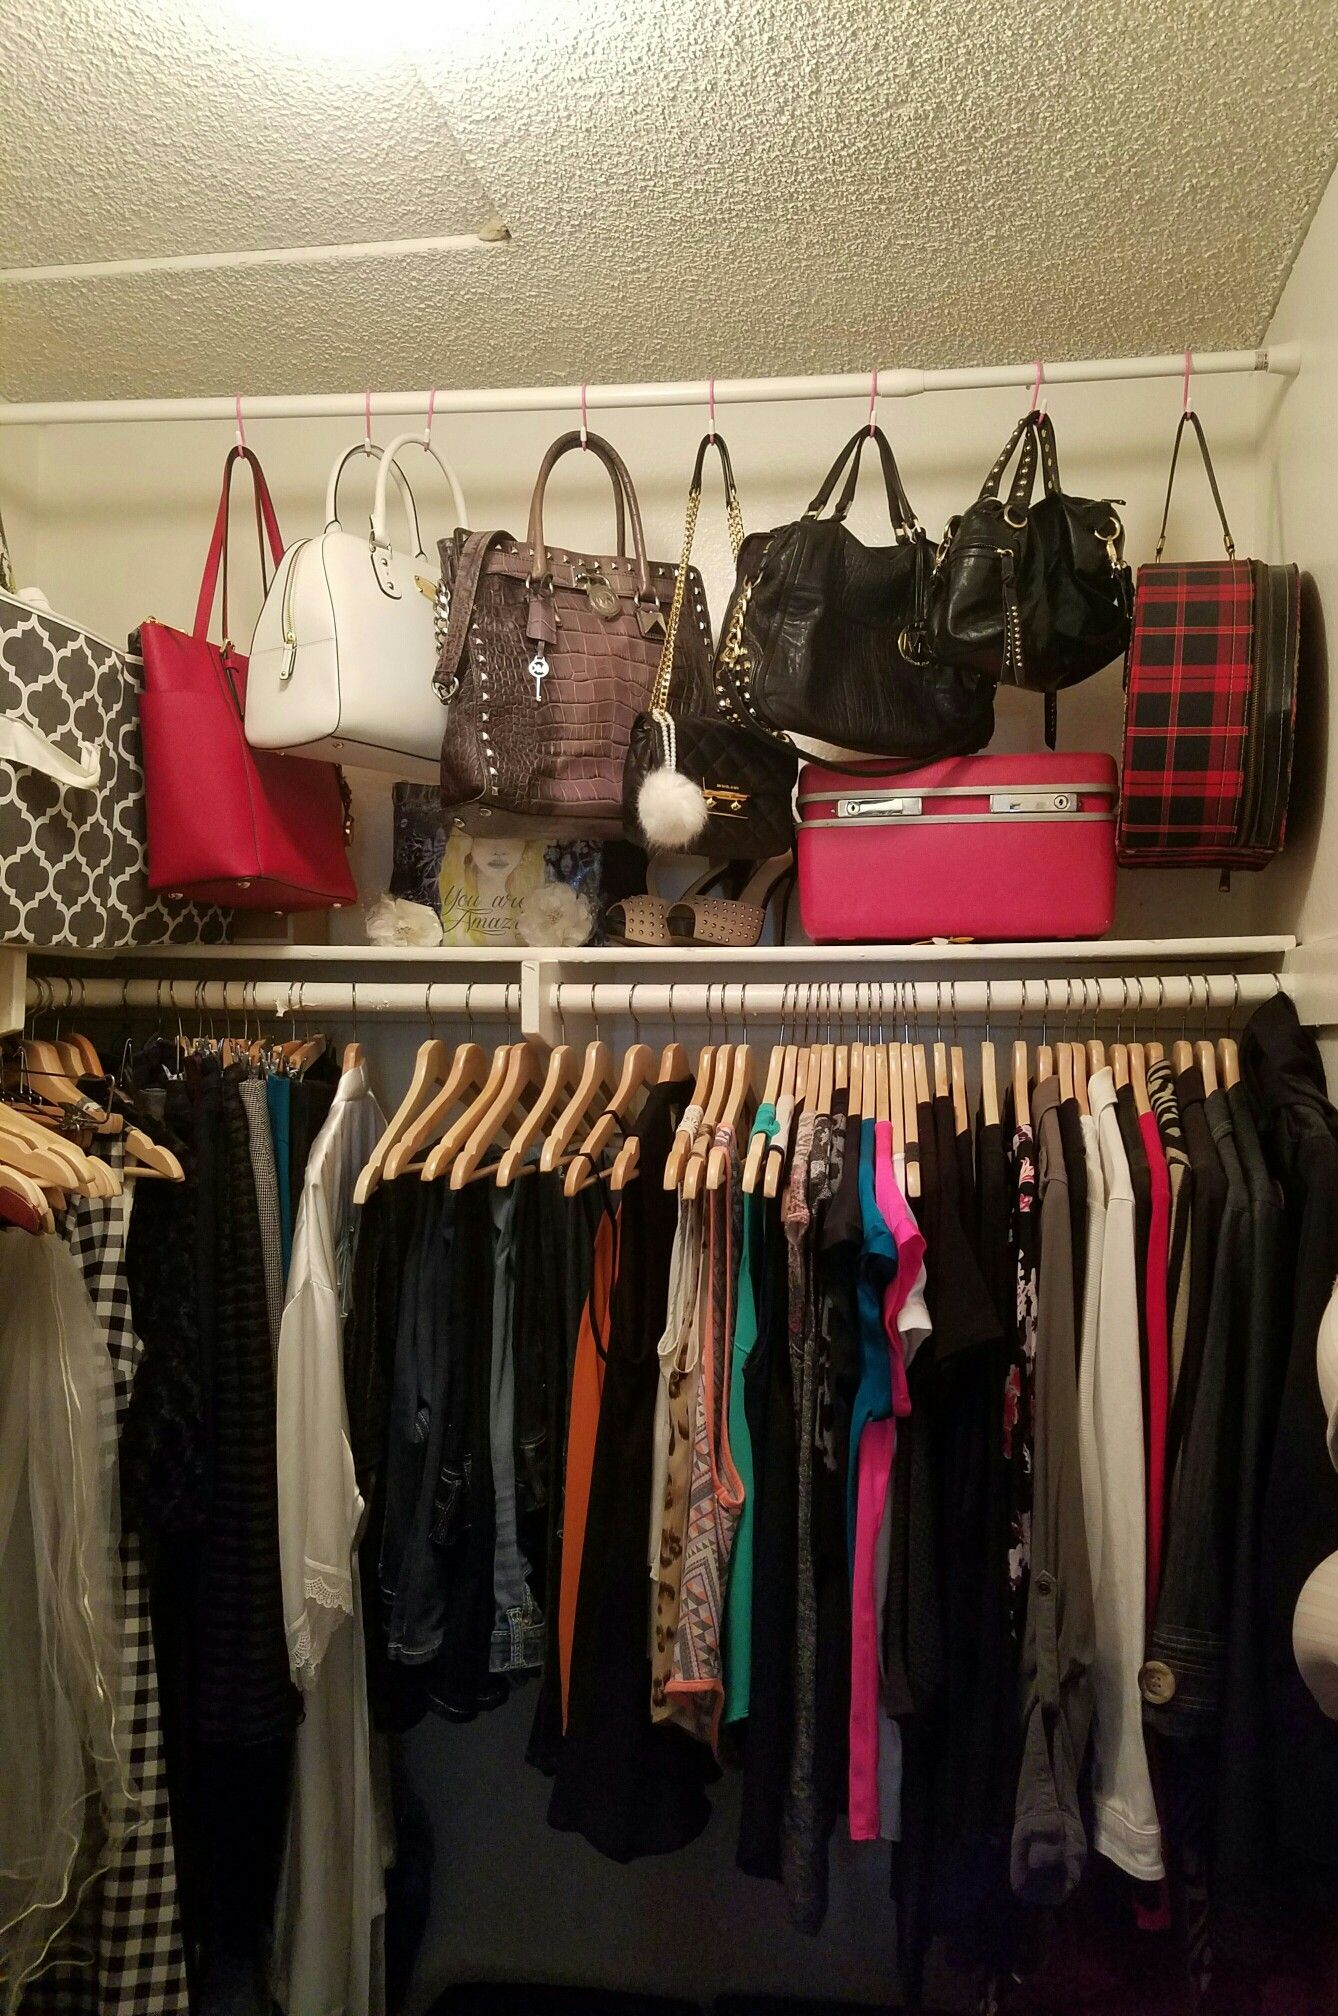 How To Dislay Handbags In Your Closet Organize Purses Closet In